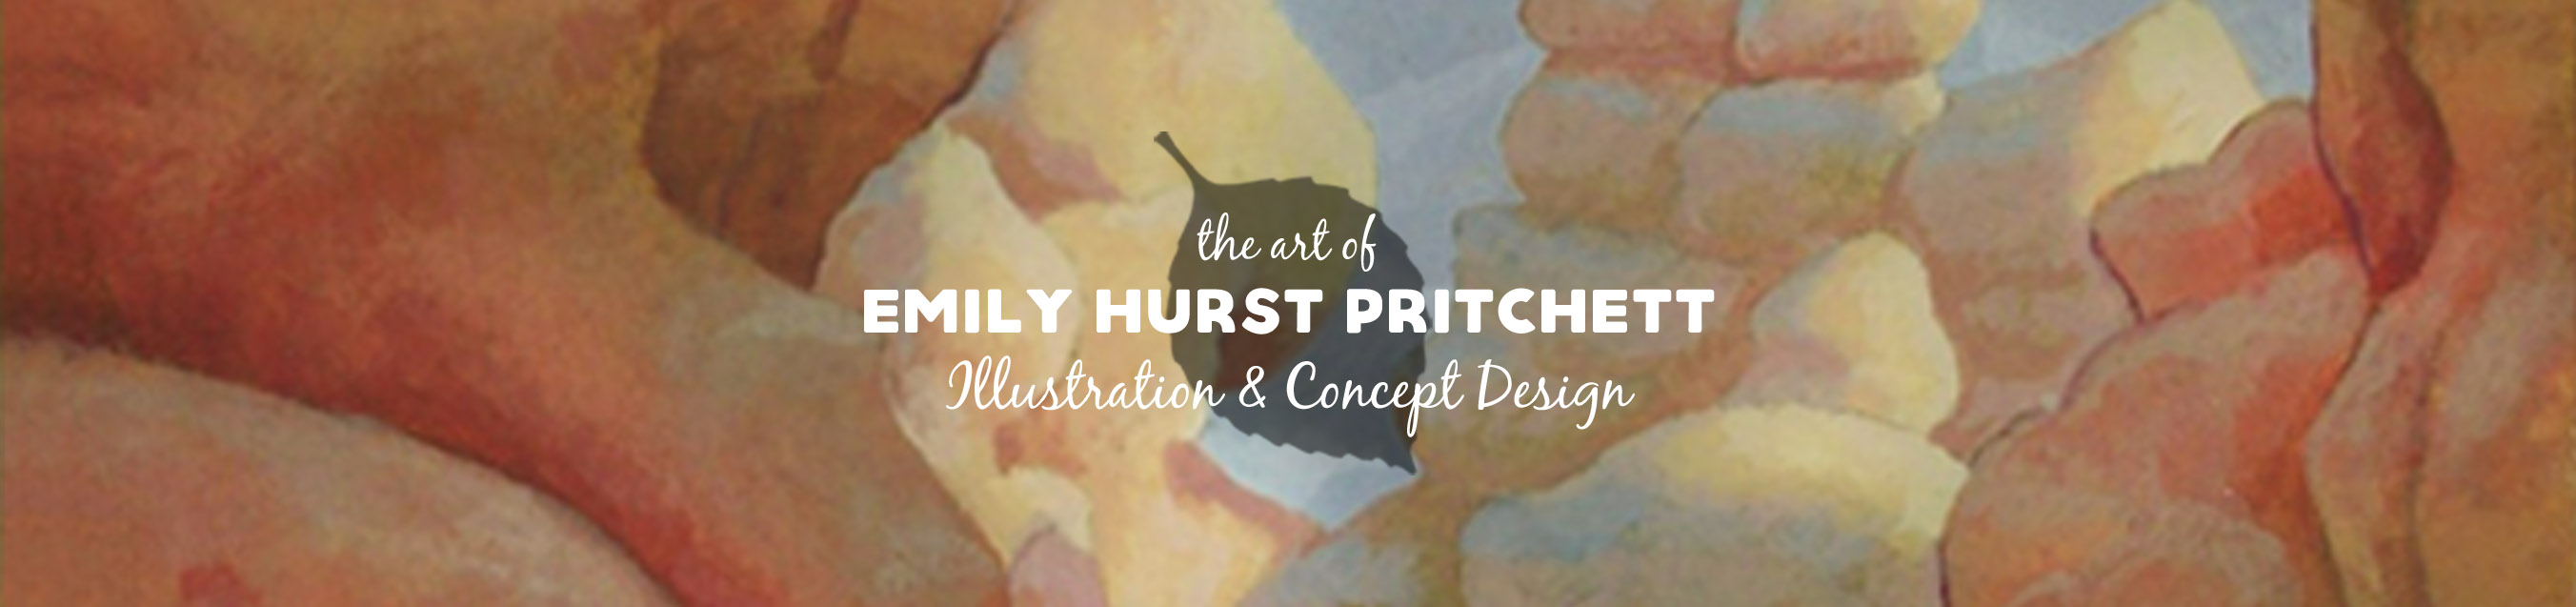 The Art of Emily Hurst Pritchett